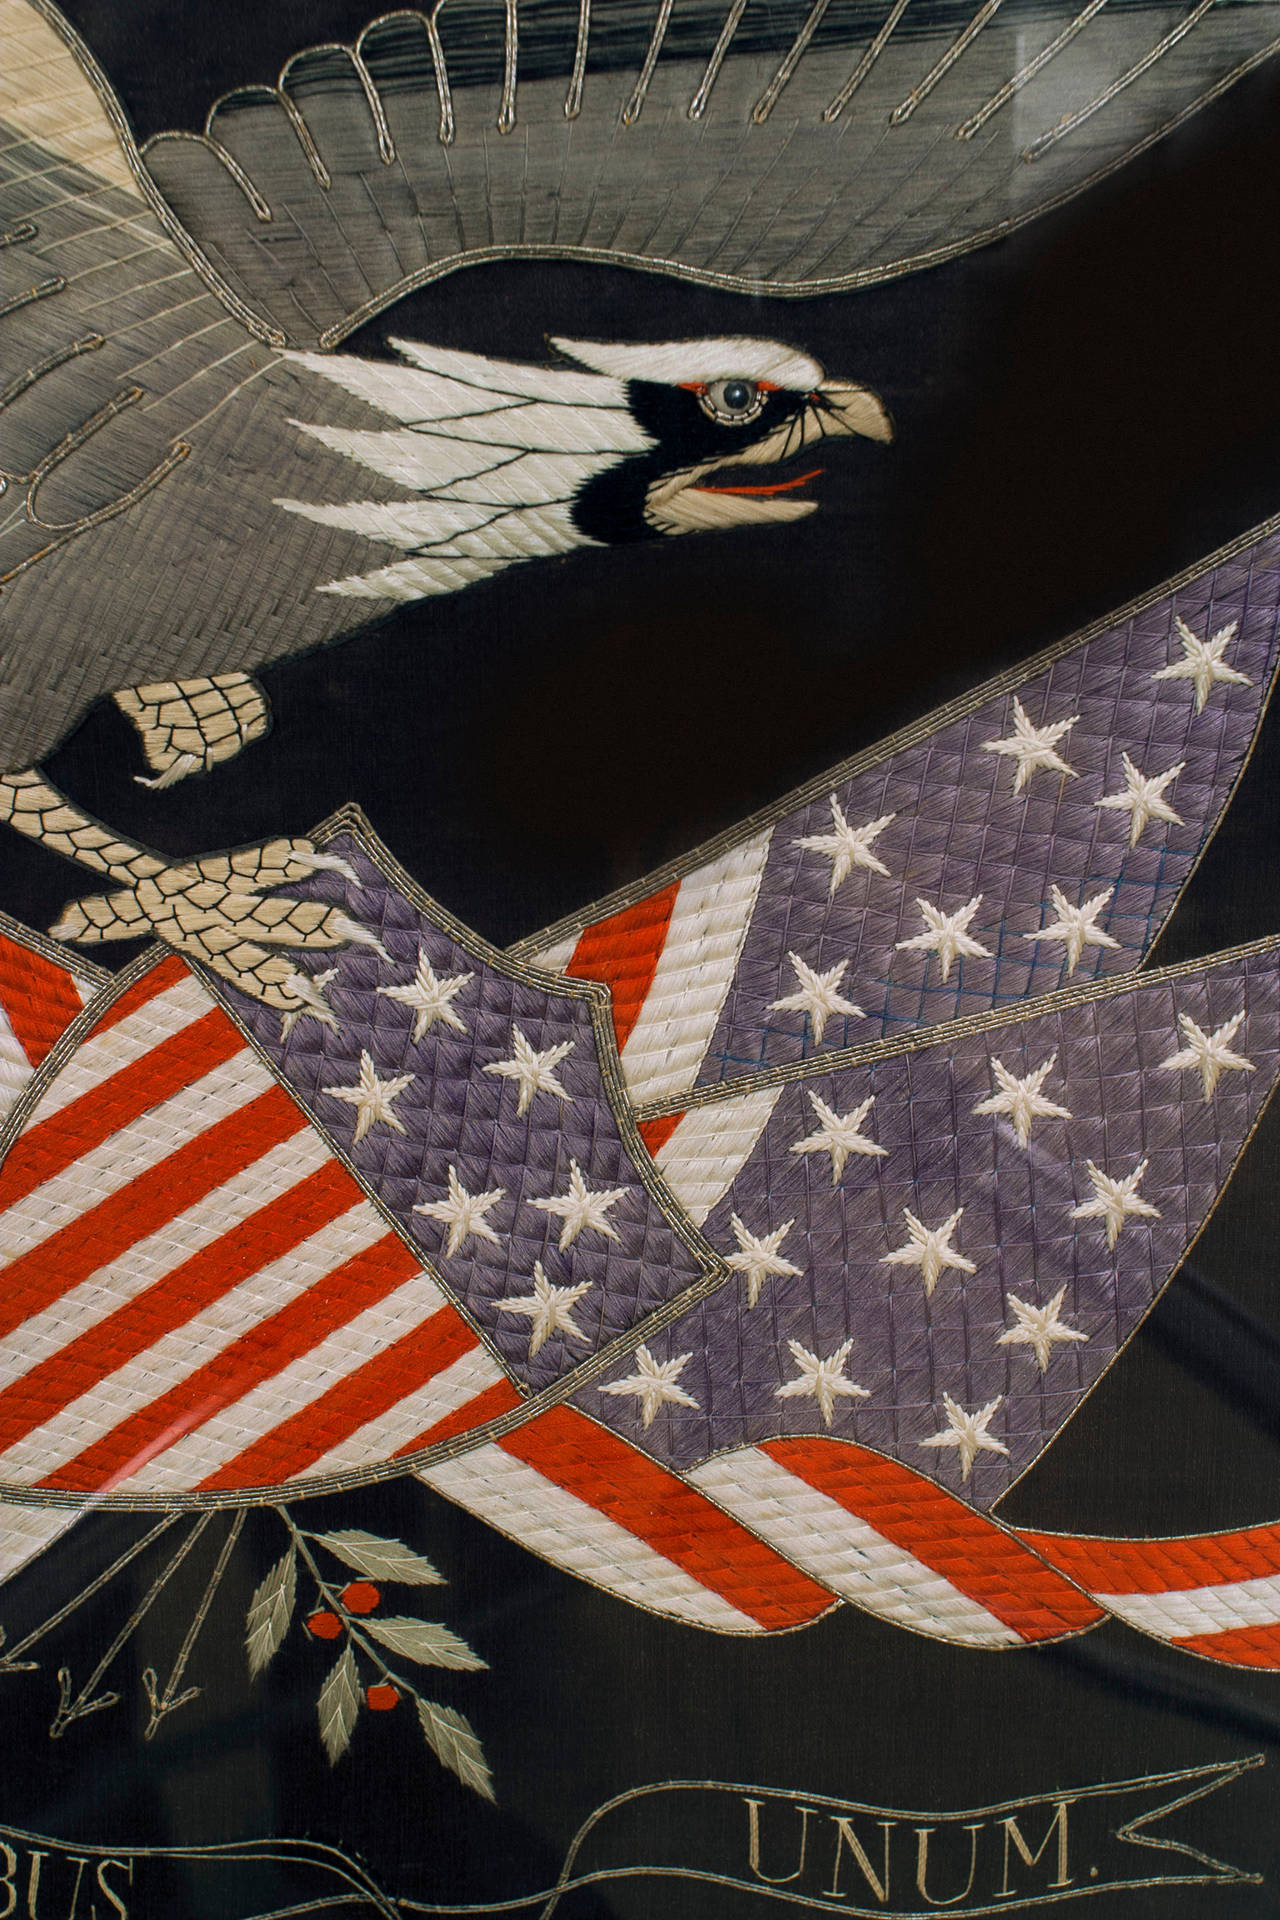 American (19th Cent) Federal style quilted silk embroidery of an eagle with a stars-and-stripes shield and flags with the motto: